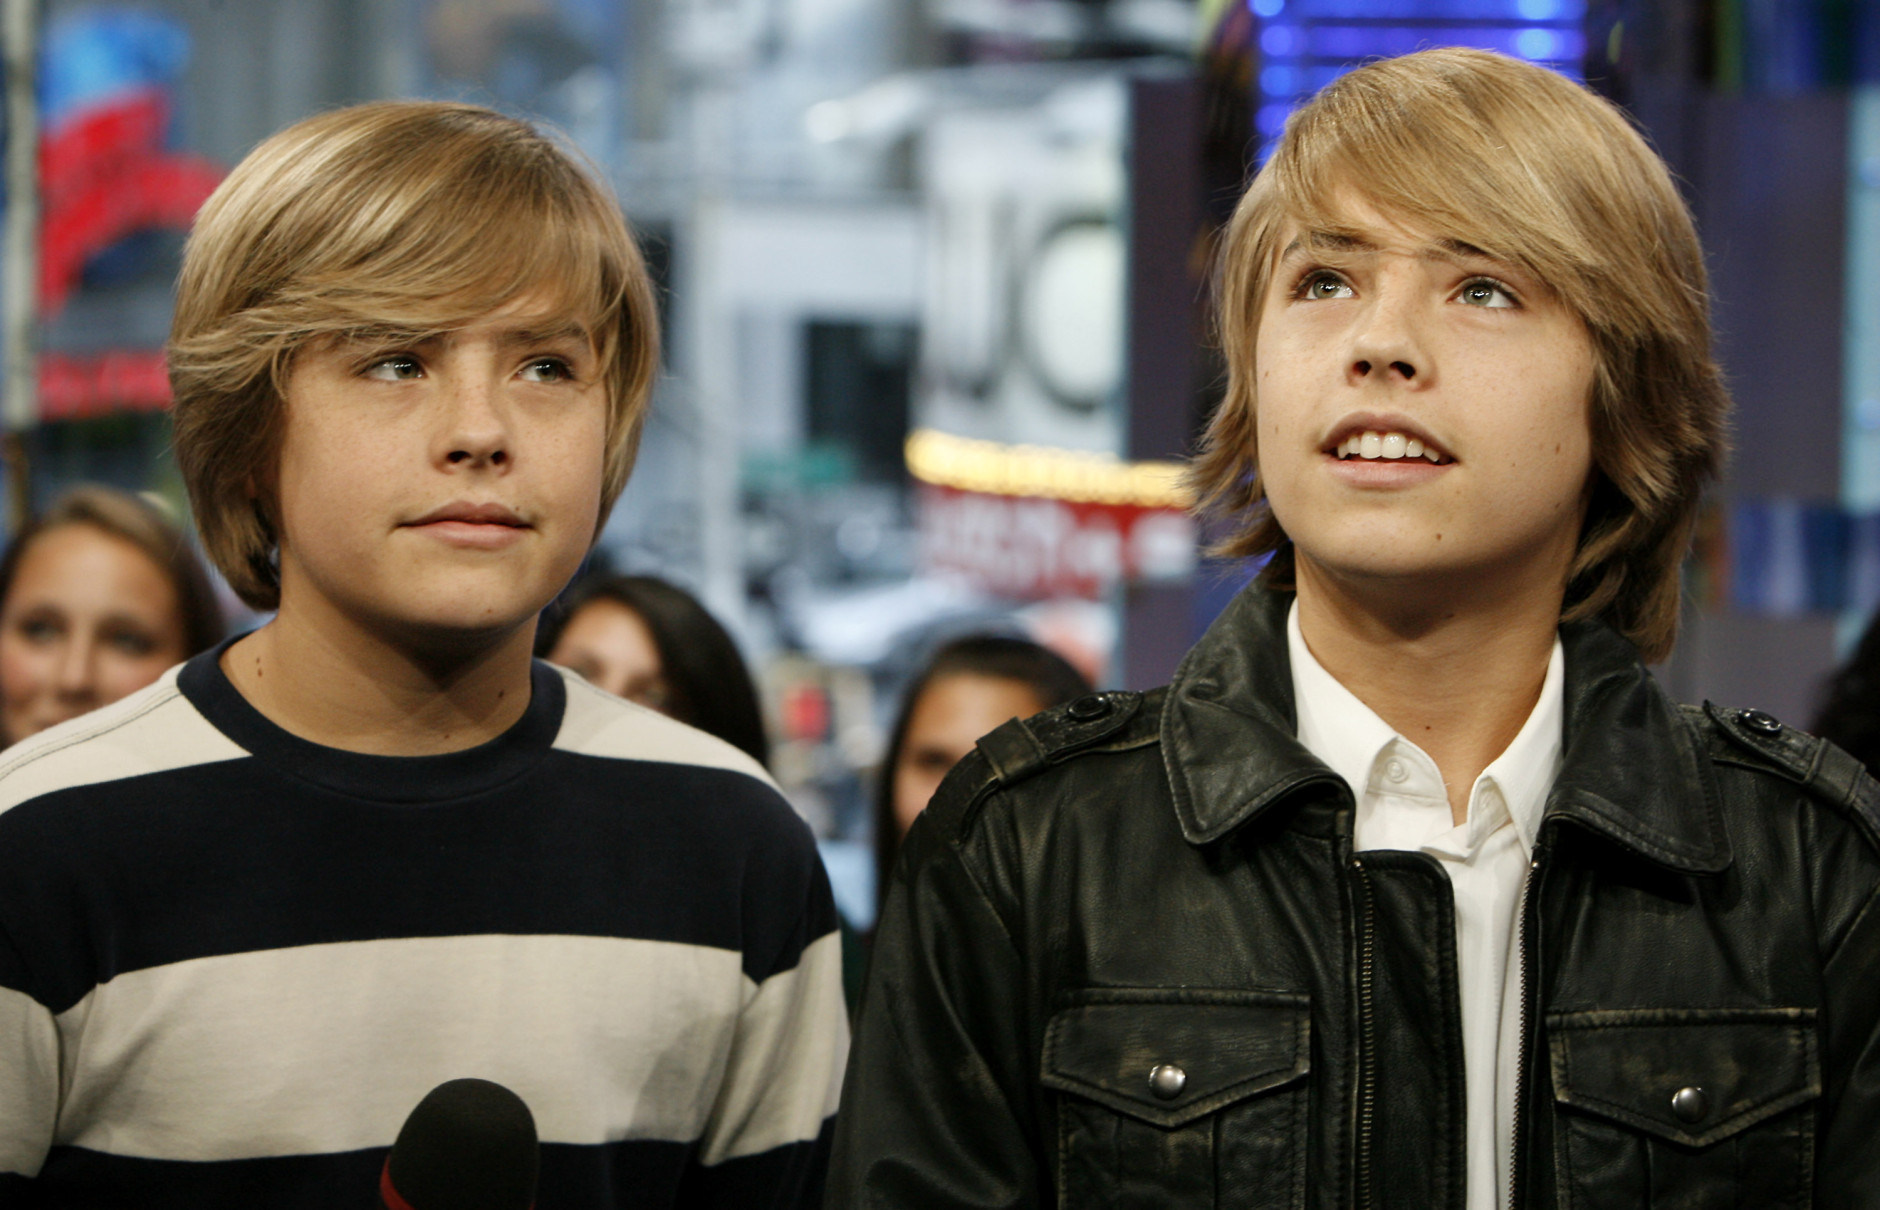 """Actors Dylan Sprouse, left, and Cole Sprouse appear onstage during MTV's """"Total Request Live"""" at the MTV Times Square Studios Tuesday, Oct. 14, 2008 in New York.  (AP Photo/Jason DeCrow)"""